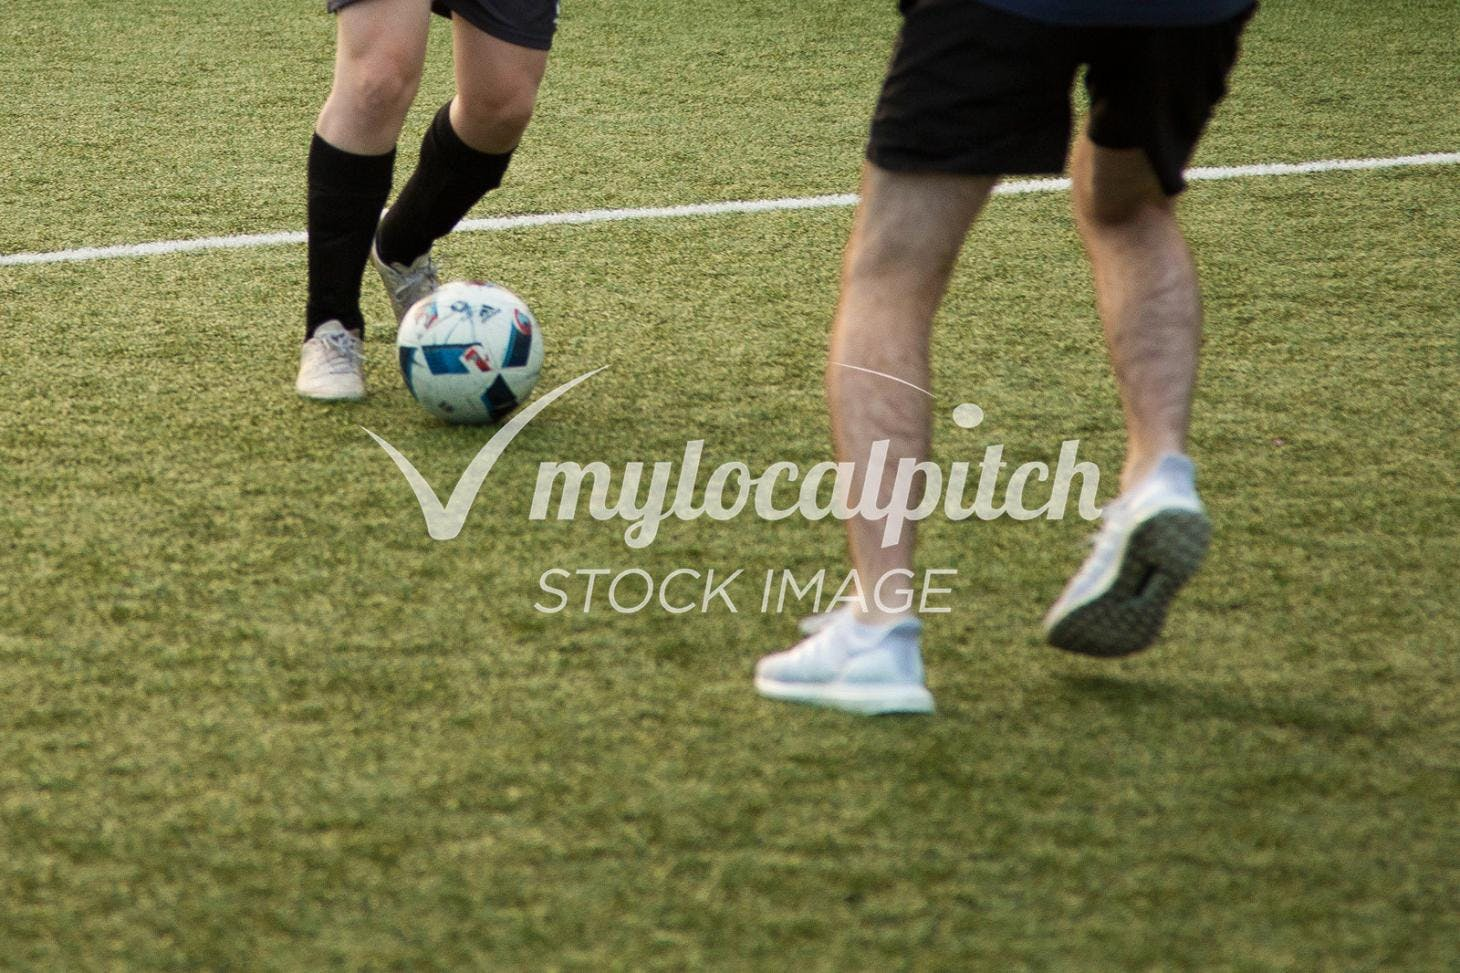 Woodside Playing Field 11 a side | Grass football pitch